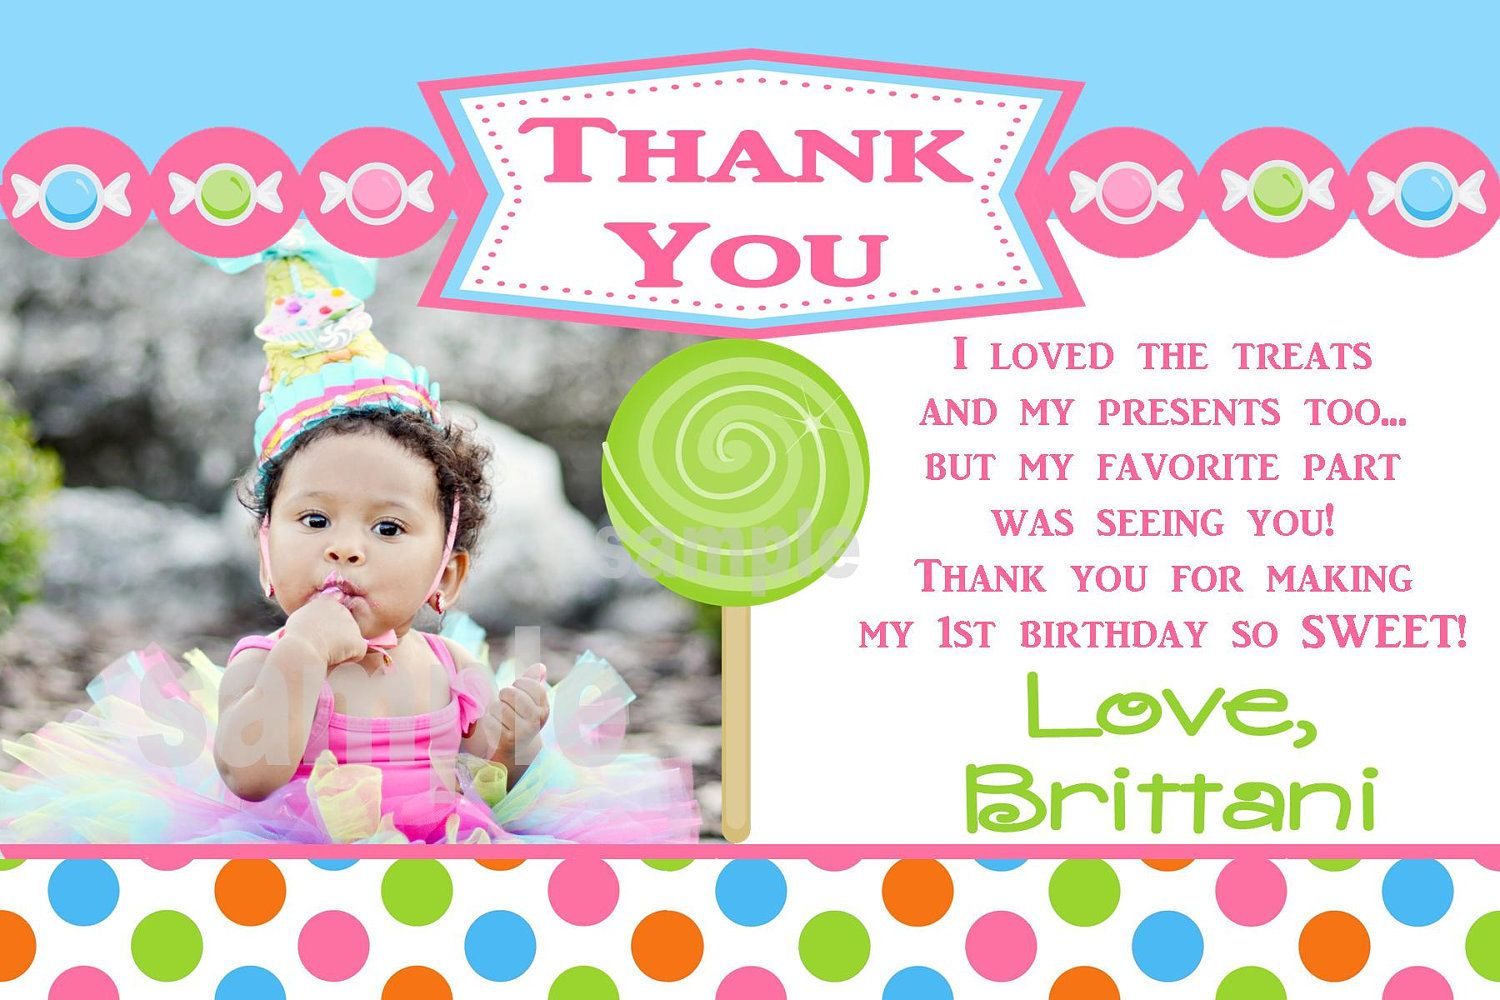 Thank You Card 1st Birthday Pictures Birthday Thank You Cards Candy Themed Party